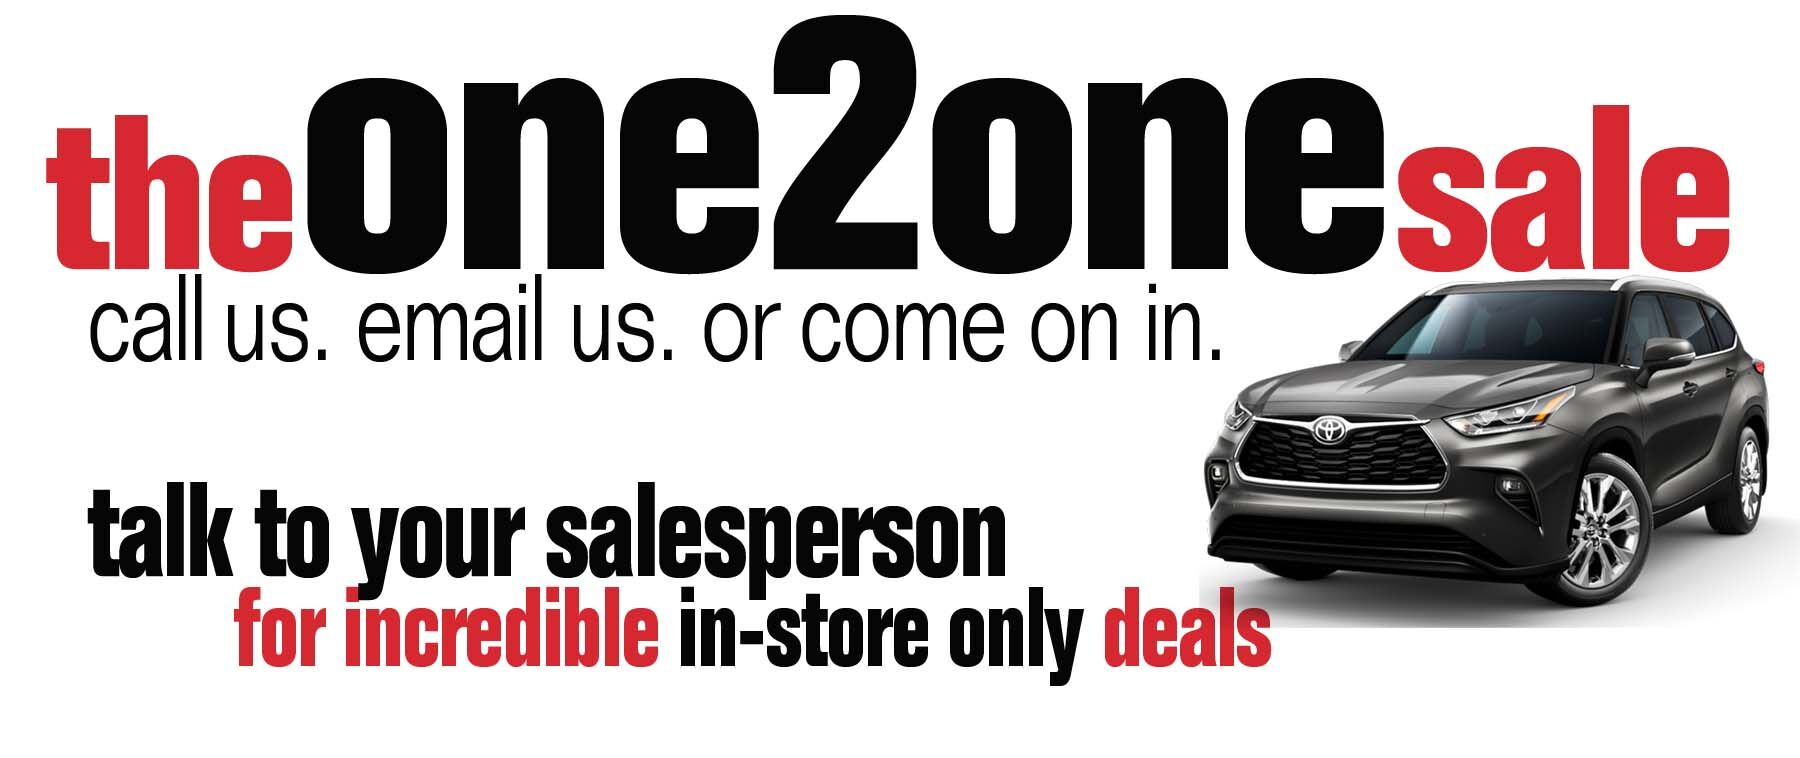 the one 2 one sale. call us. email us. or come on in.